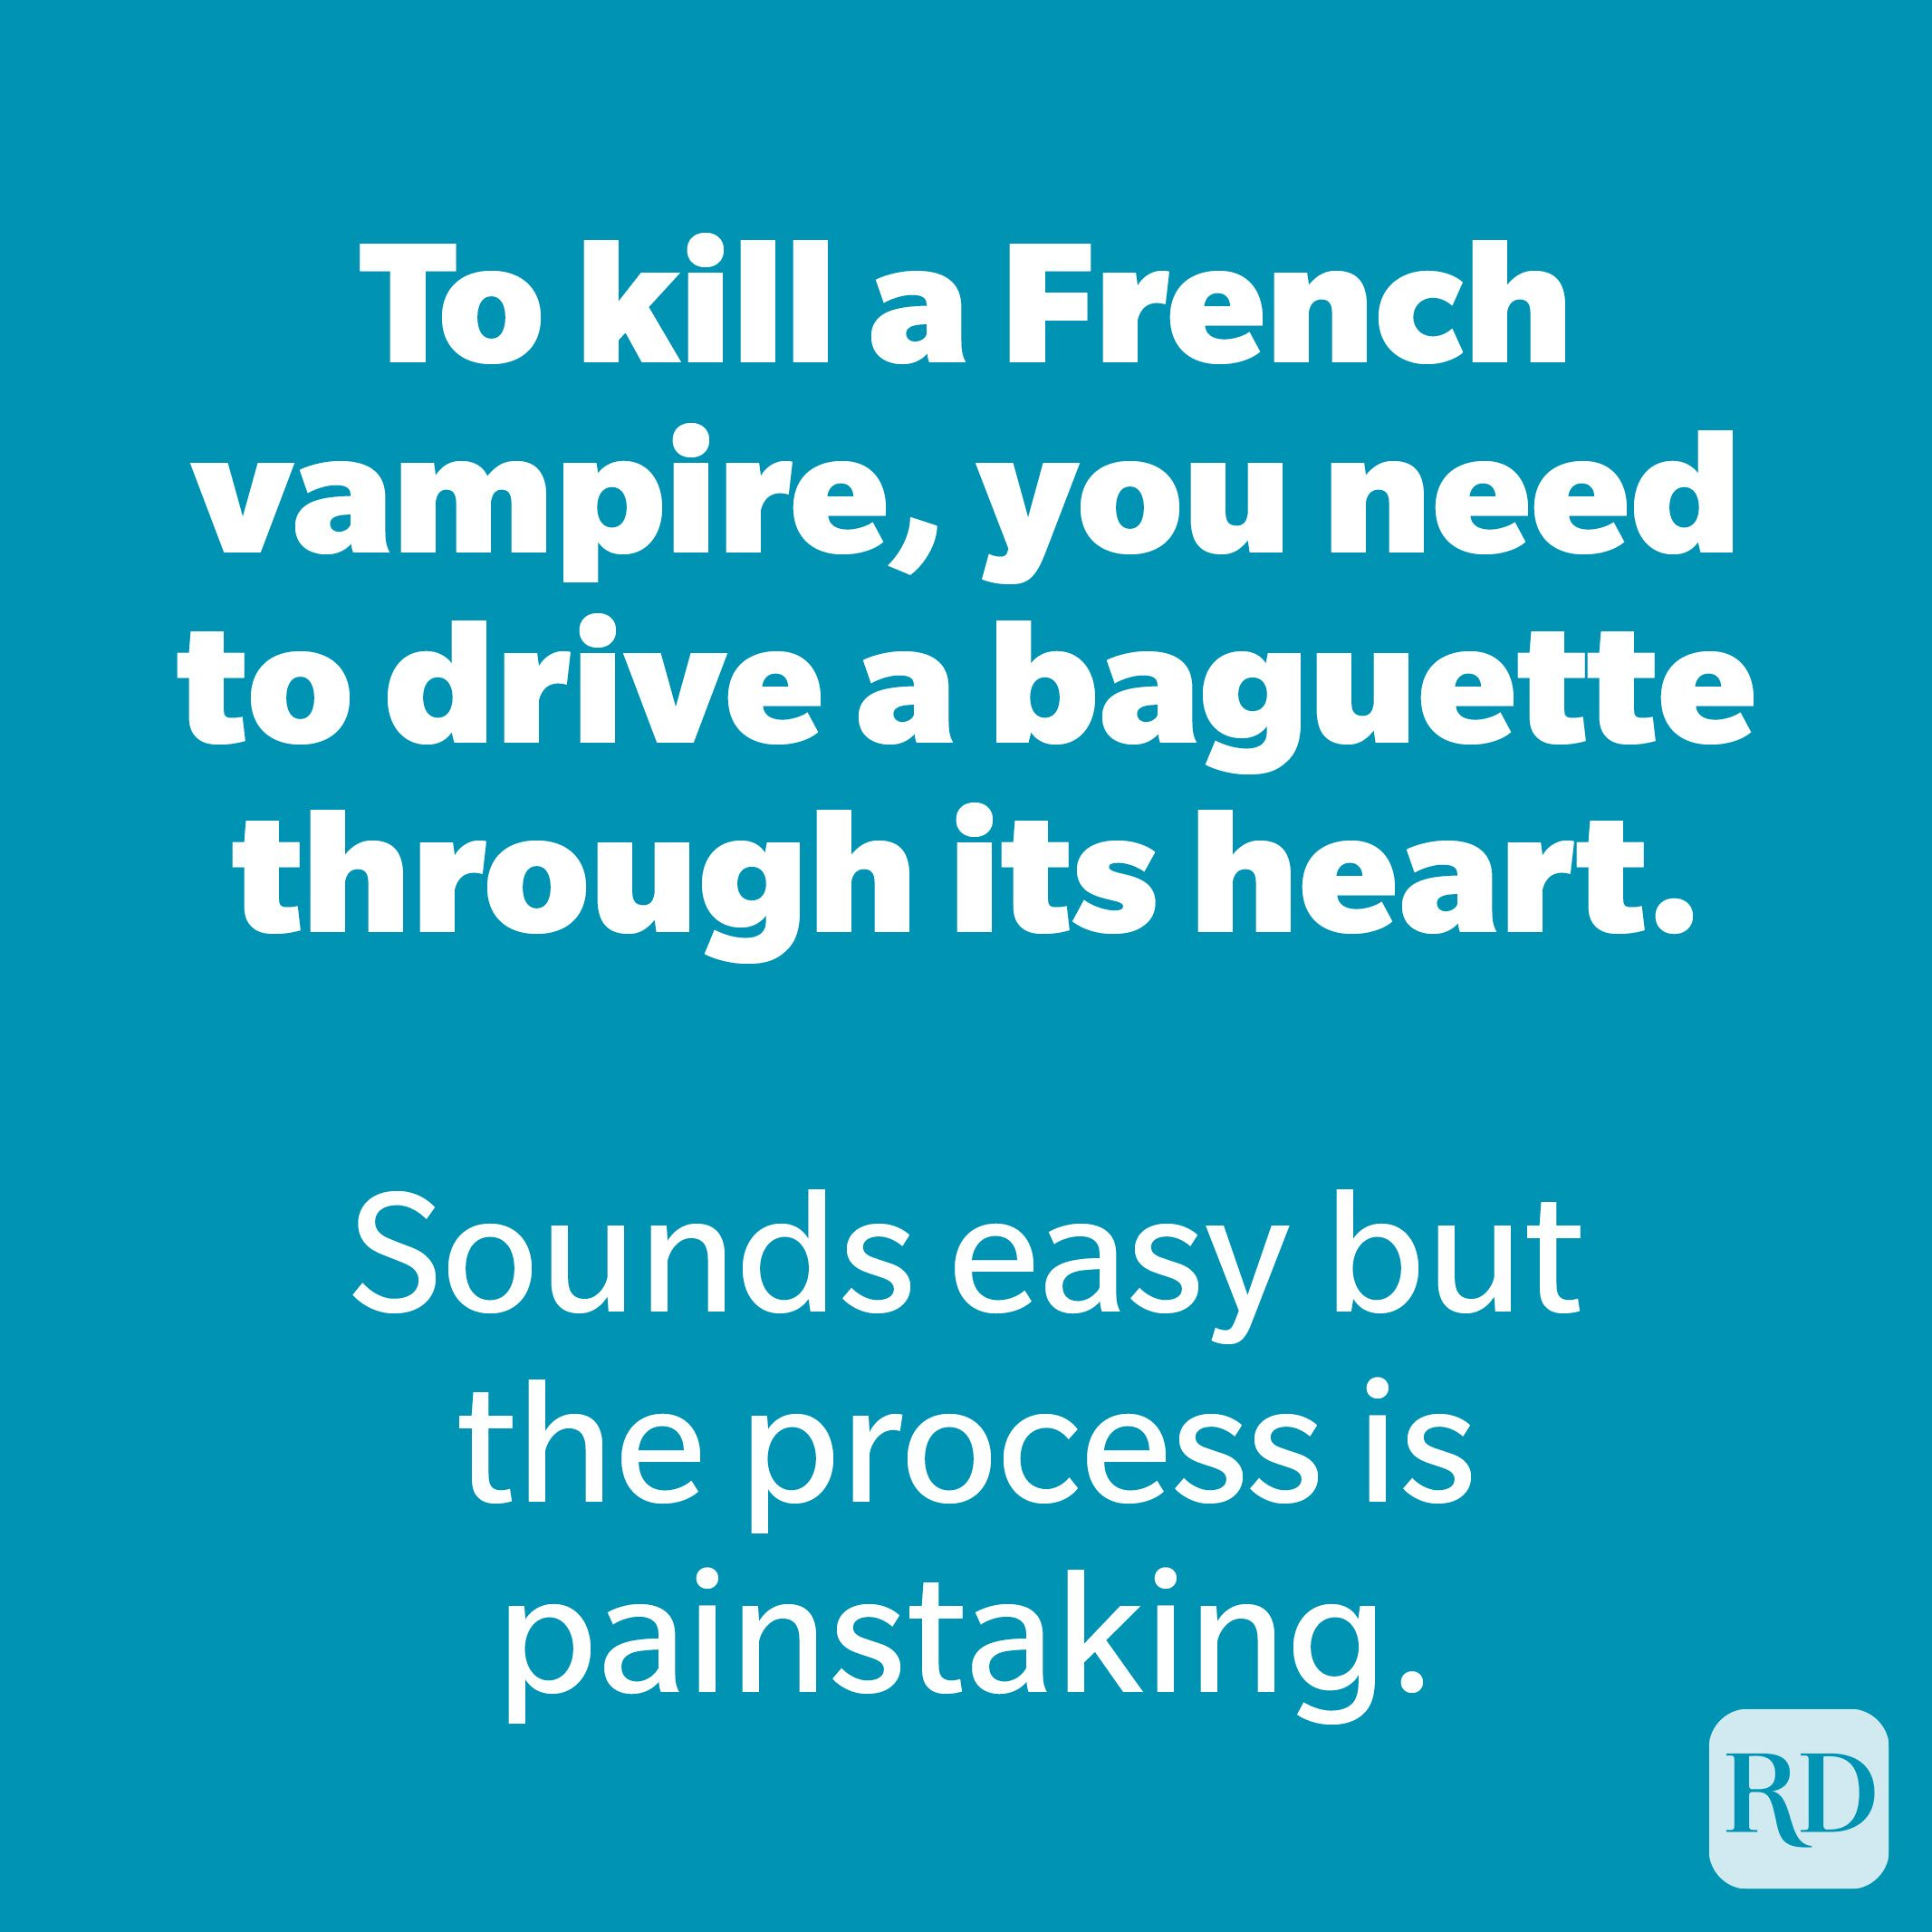 To kill a Frenchvampire,you need to drive a baguette through its heart.